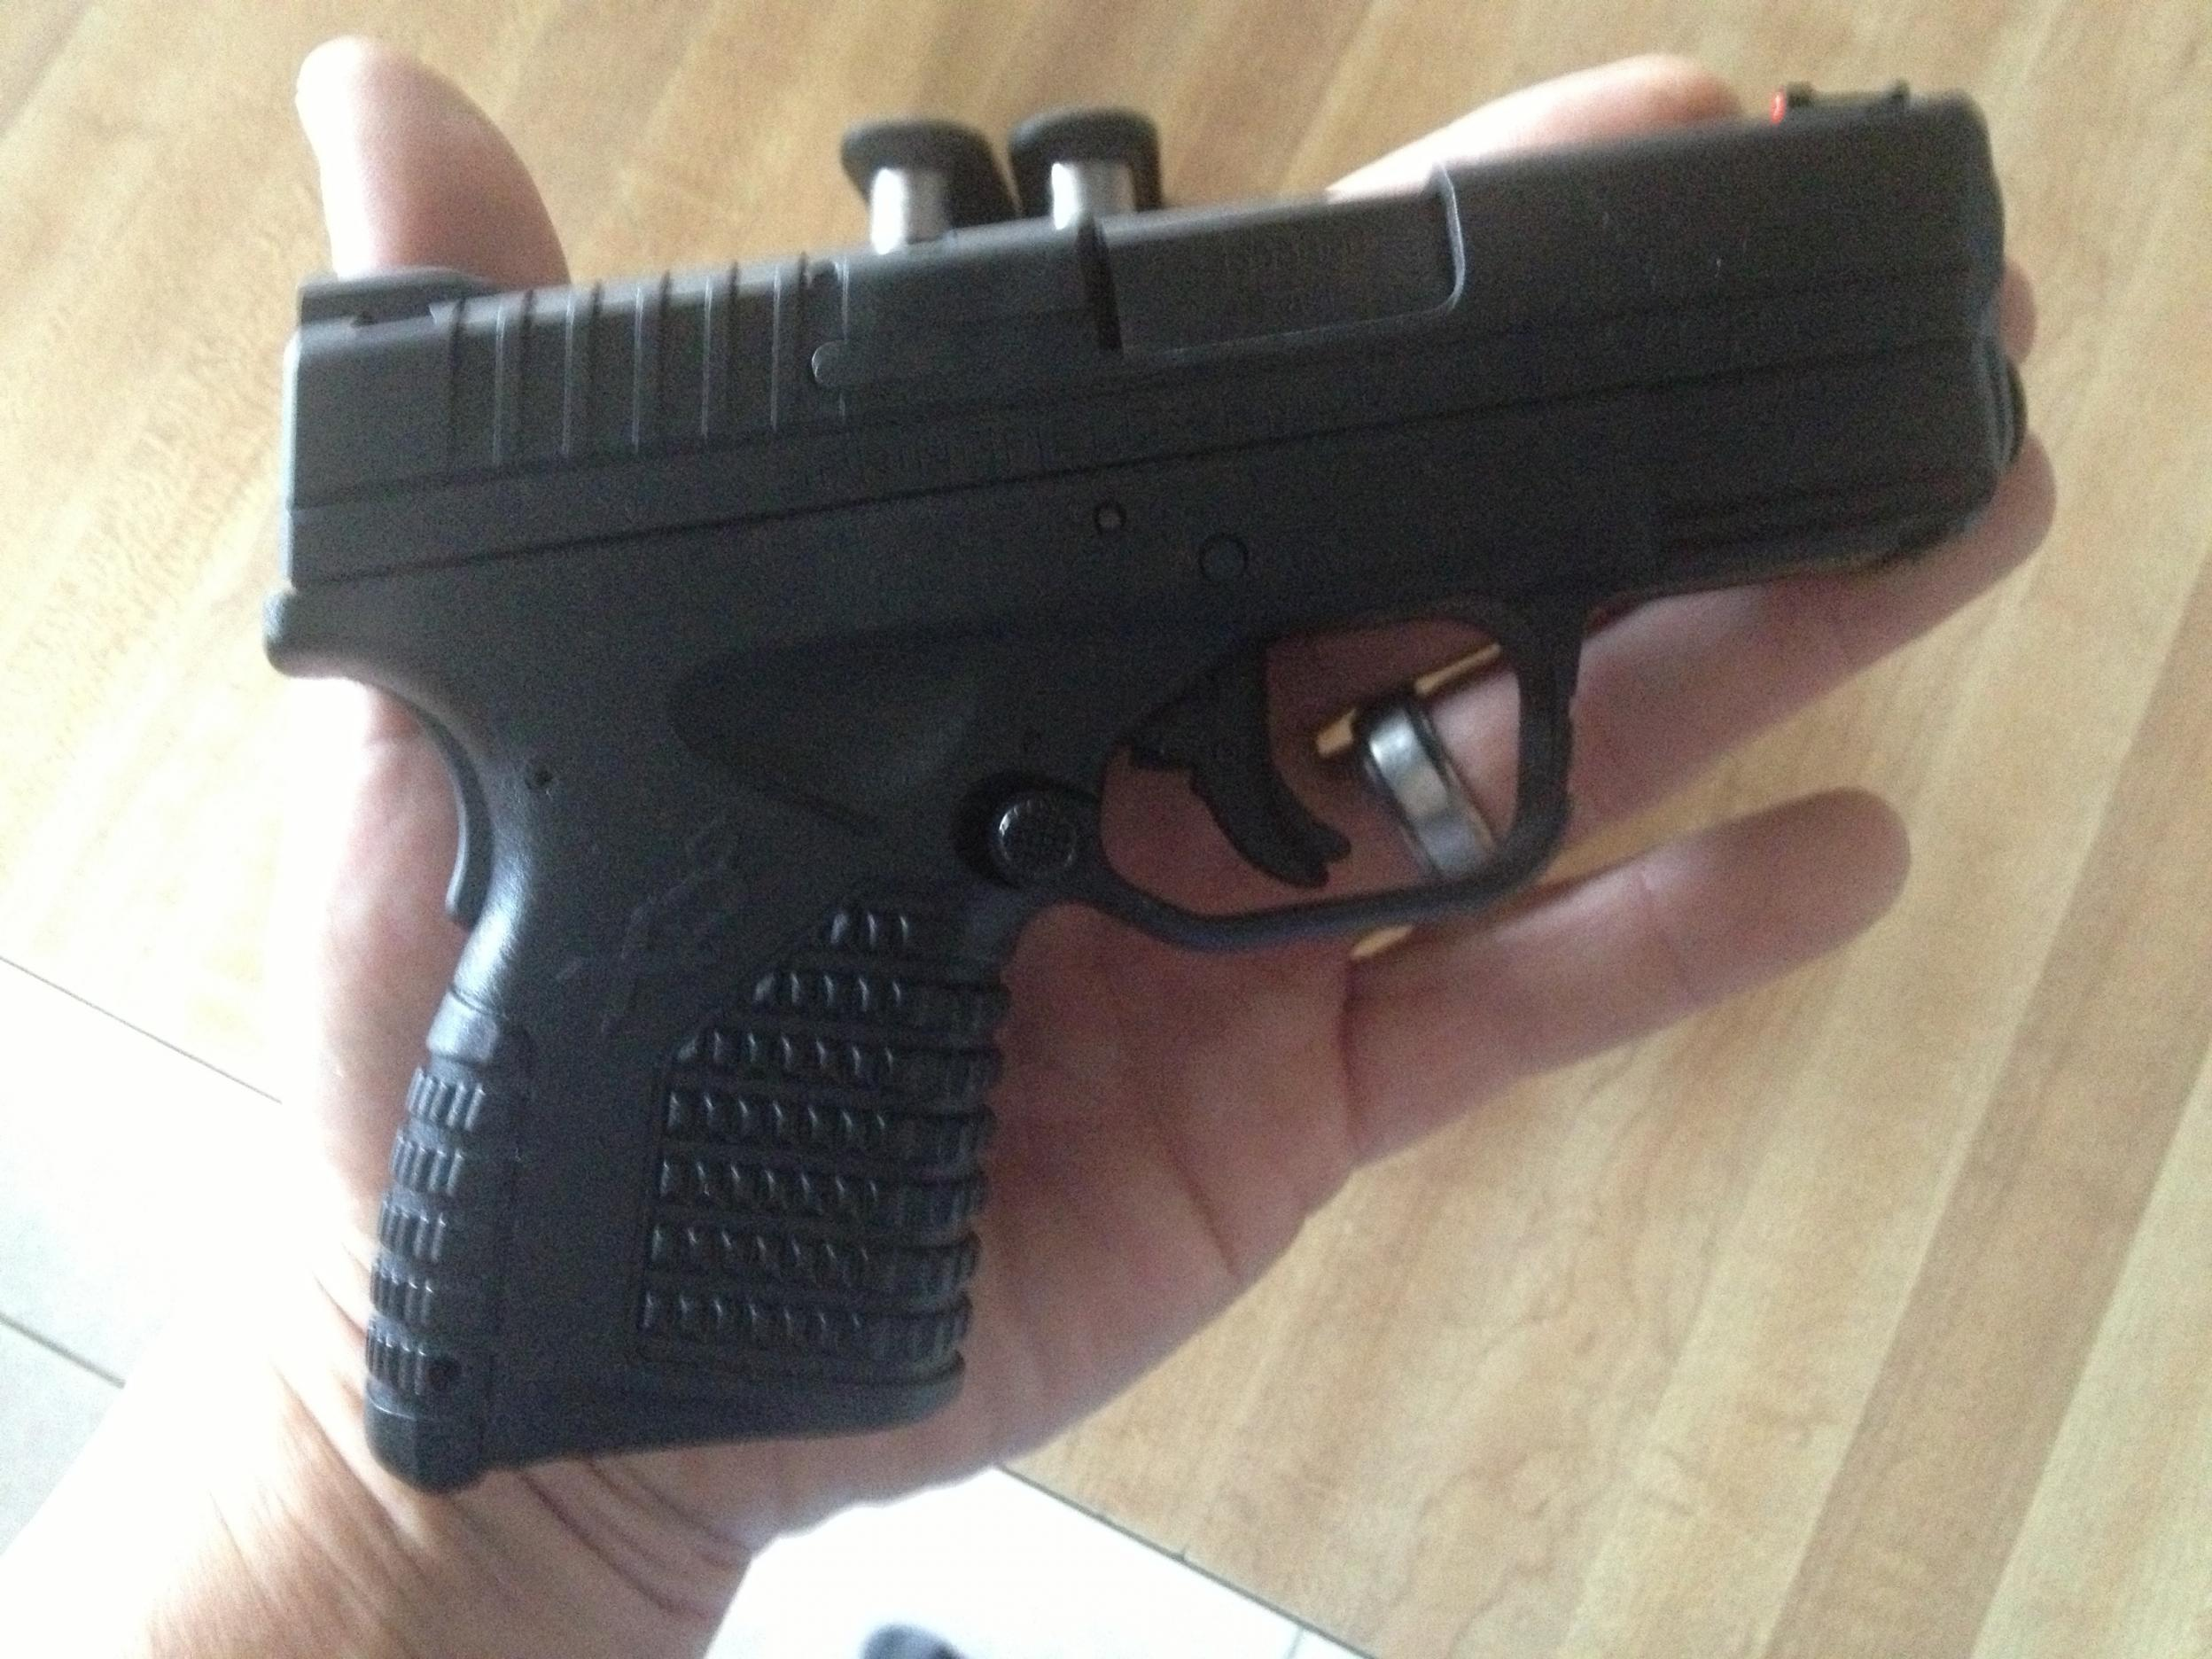 Picked up springfield xds 45 today.-image.jpg